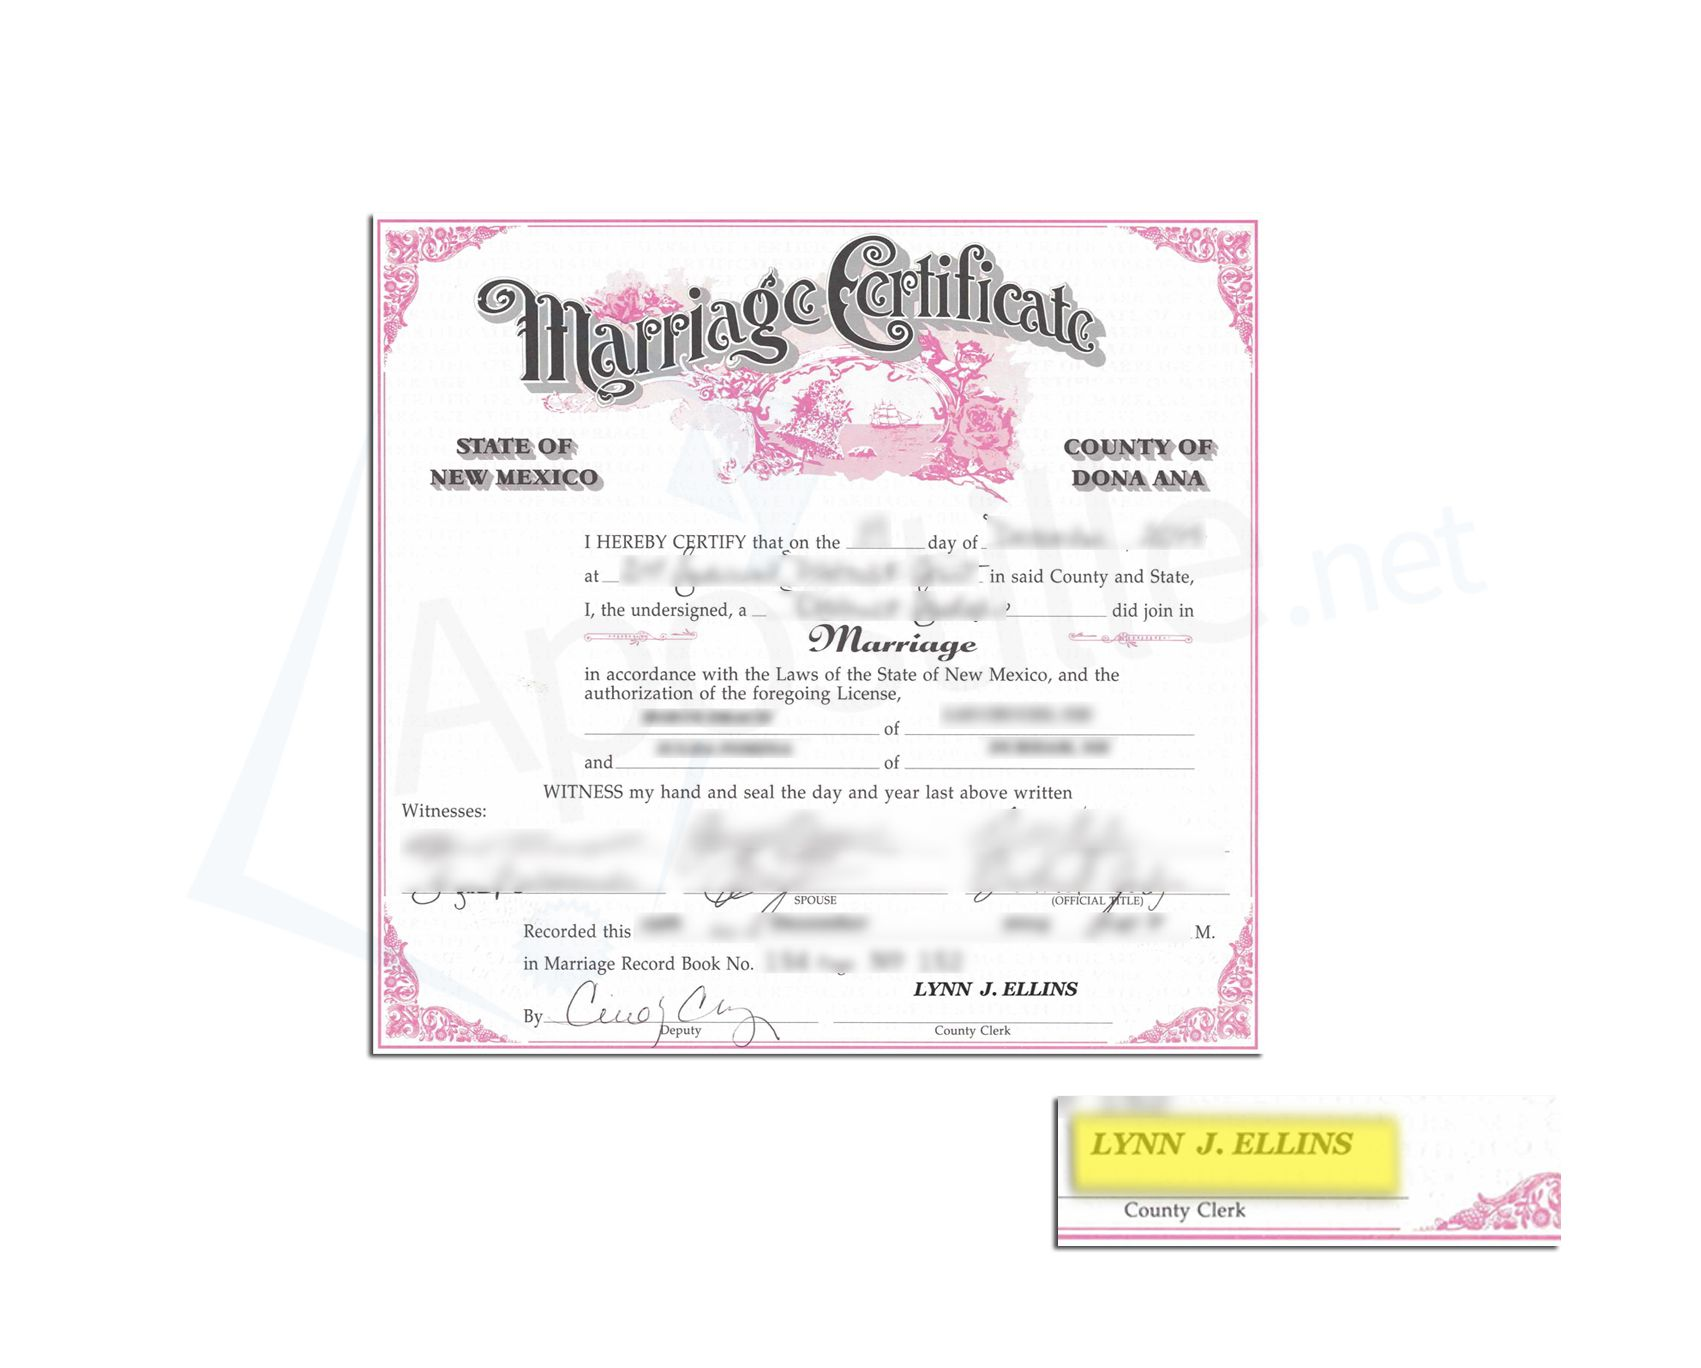 County Of Dona Ana State Of New Mexico Marriage Certificate Issued By Lynn  J Ellis County